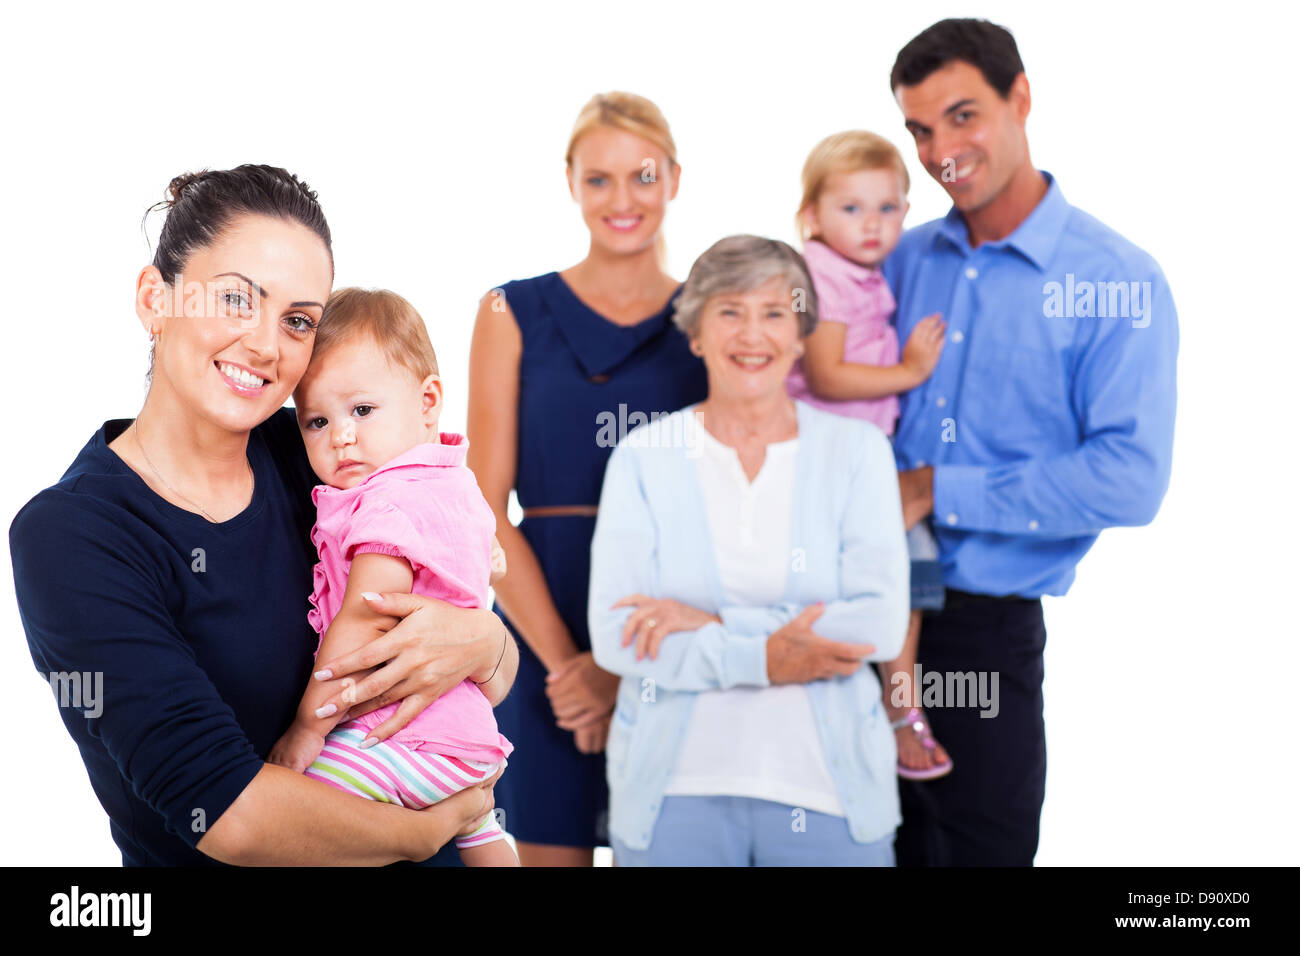 portrait of young woman holding her baby with extended family on background - Stock Image